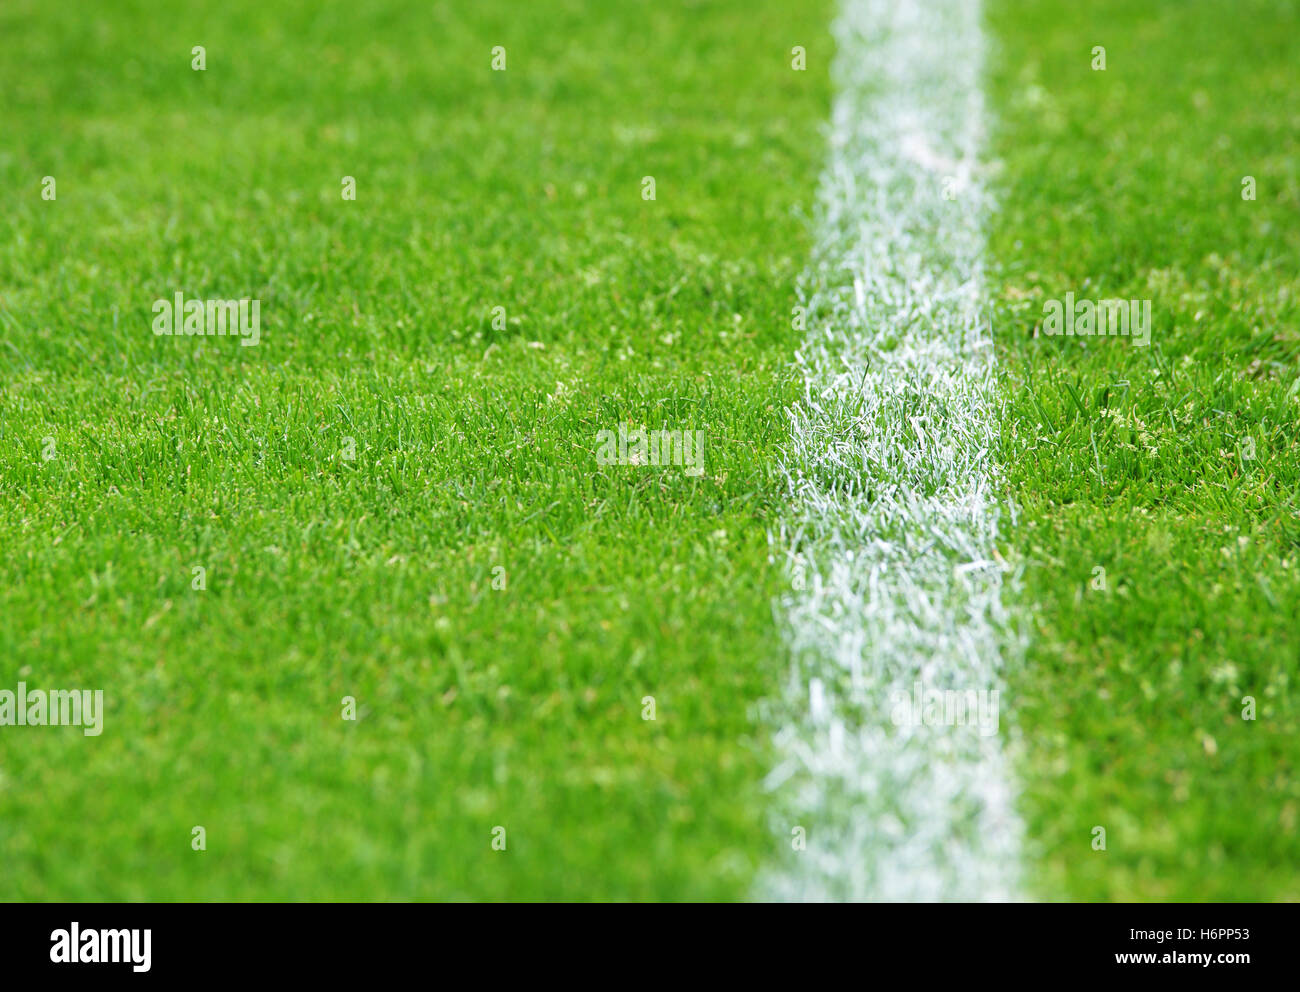 football turf sidelines right - Stock Image